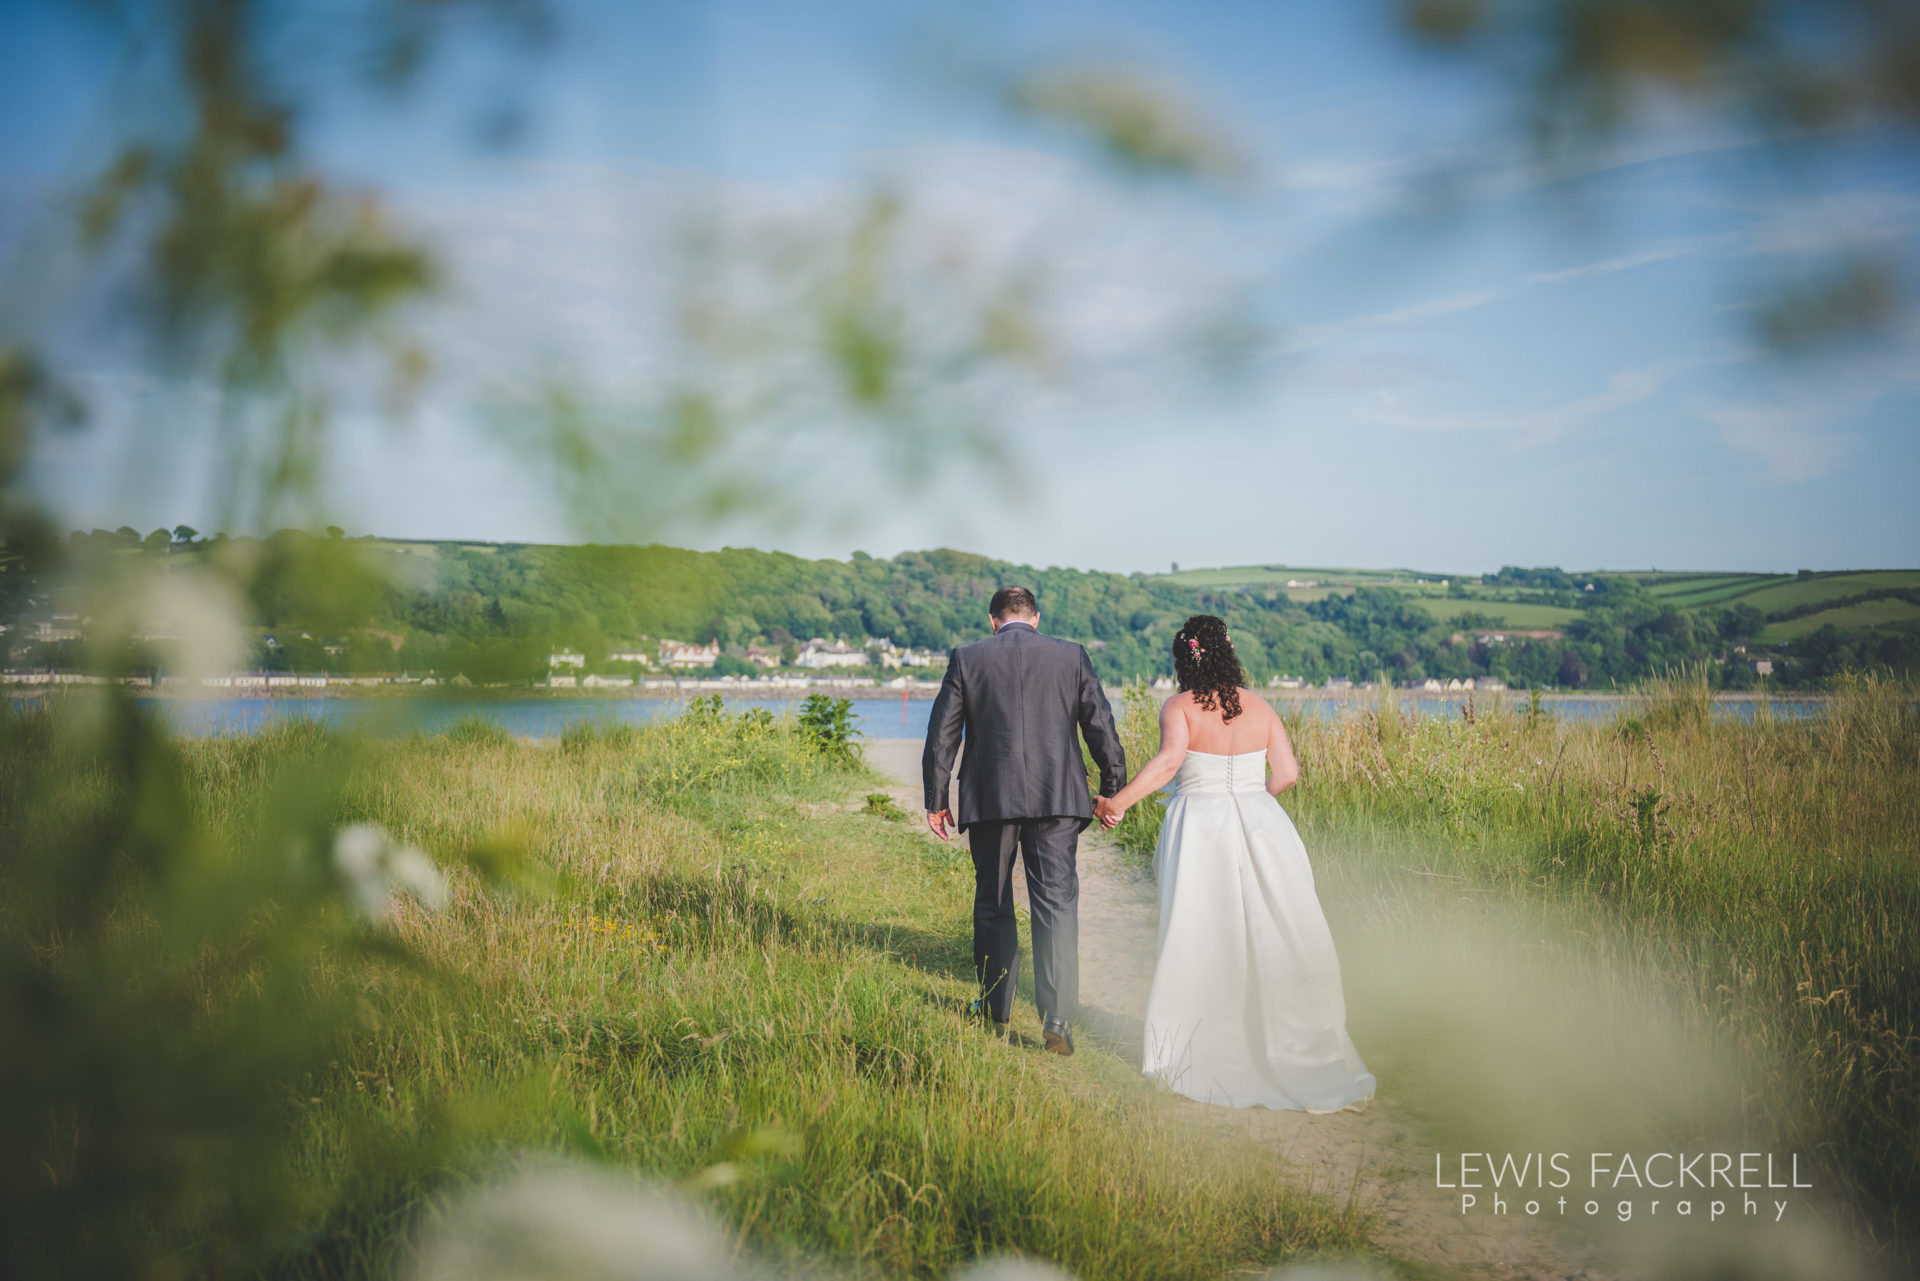 Lewis-Fackrell-Photography-Wedding-Photographer-Cardiff-Swansea-Bristol-Newport-Pre-wedding-photoshoot-Rhian-Mark-Mansion-House-Llansteffan-Carmarthenshire--114